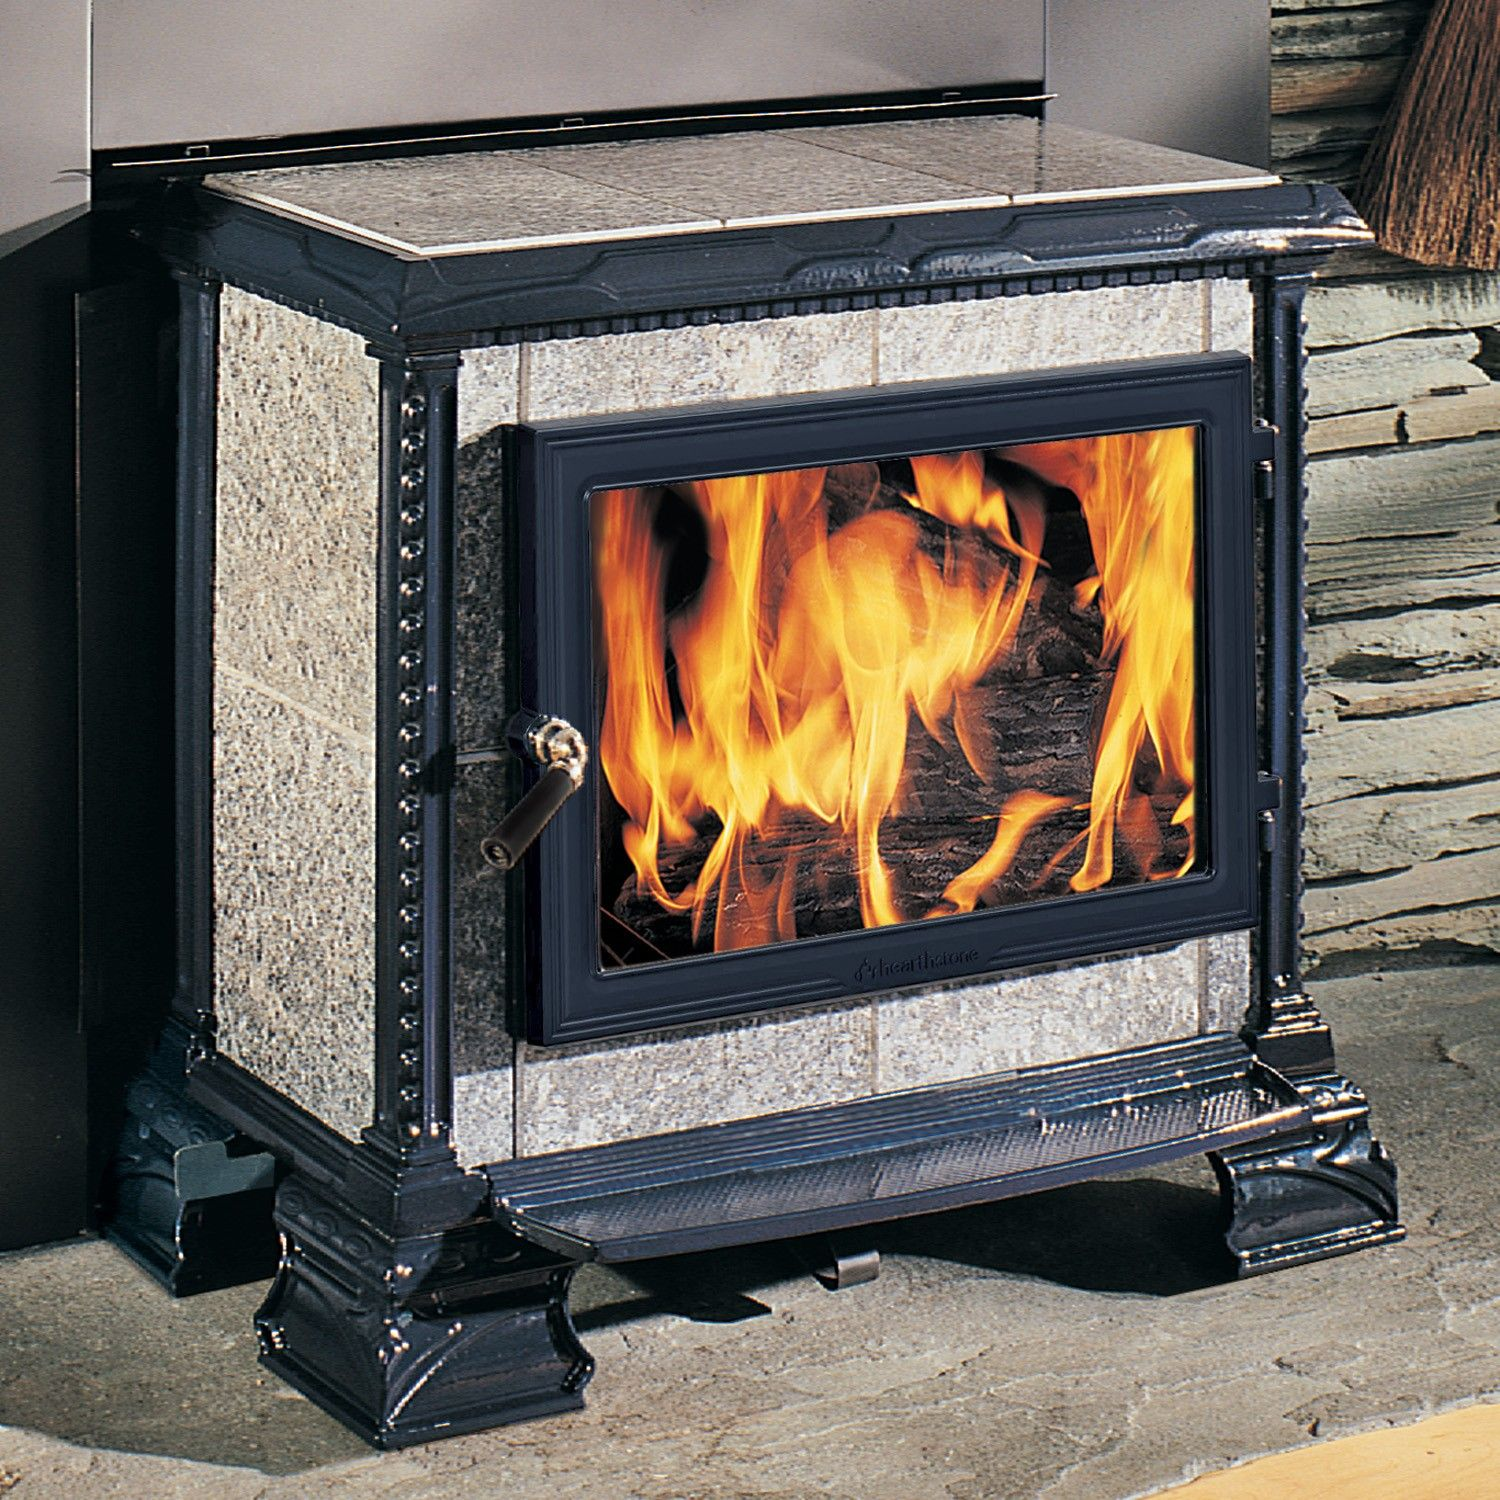 homestead hearthmount 8570h wood stove with blue black satin enamel